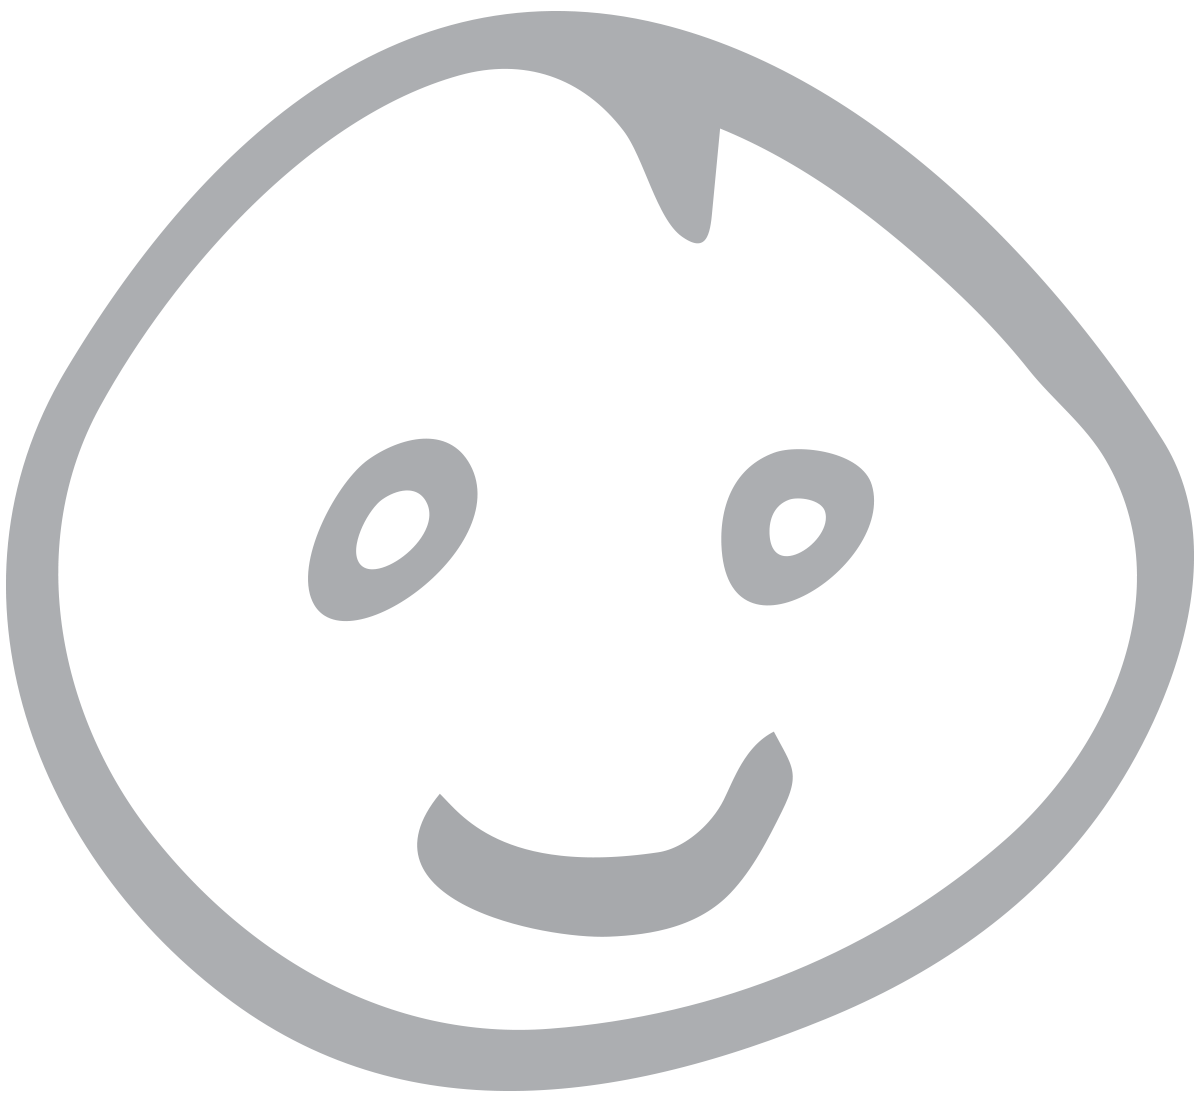 IMAGE: a hand drawn smiley face